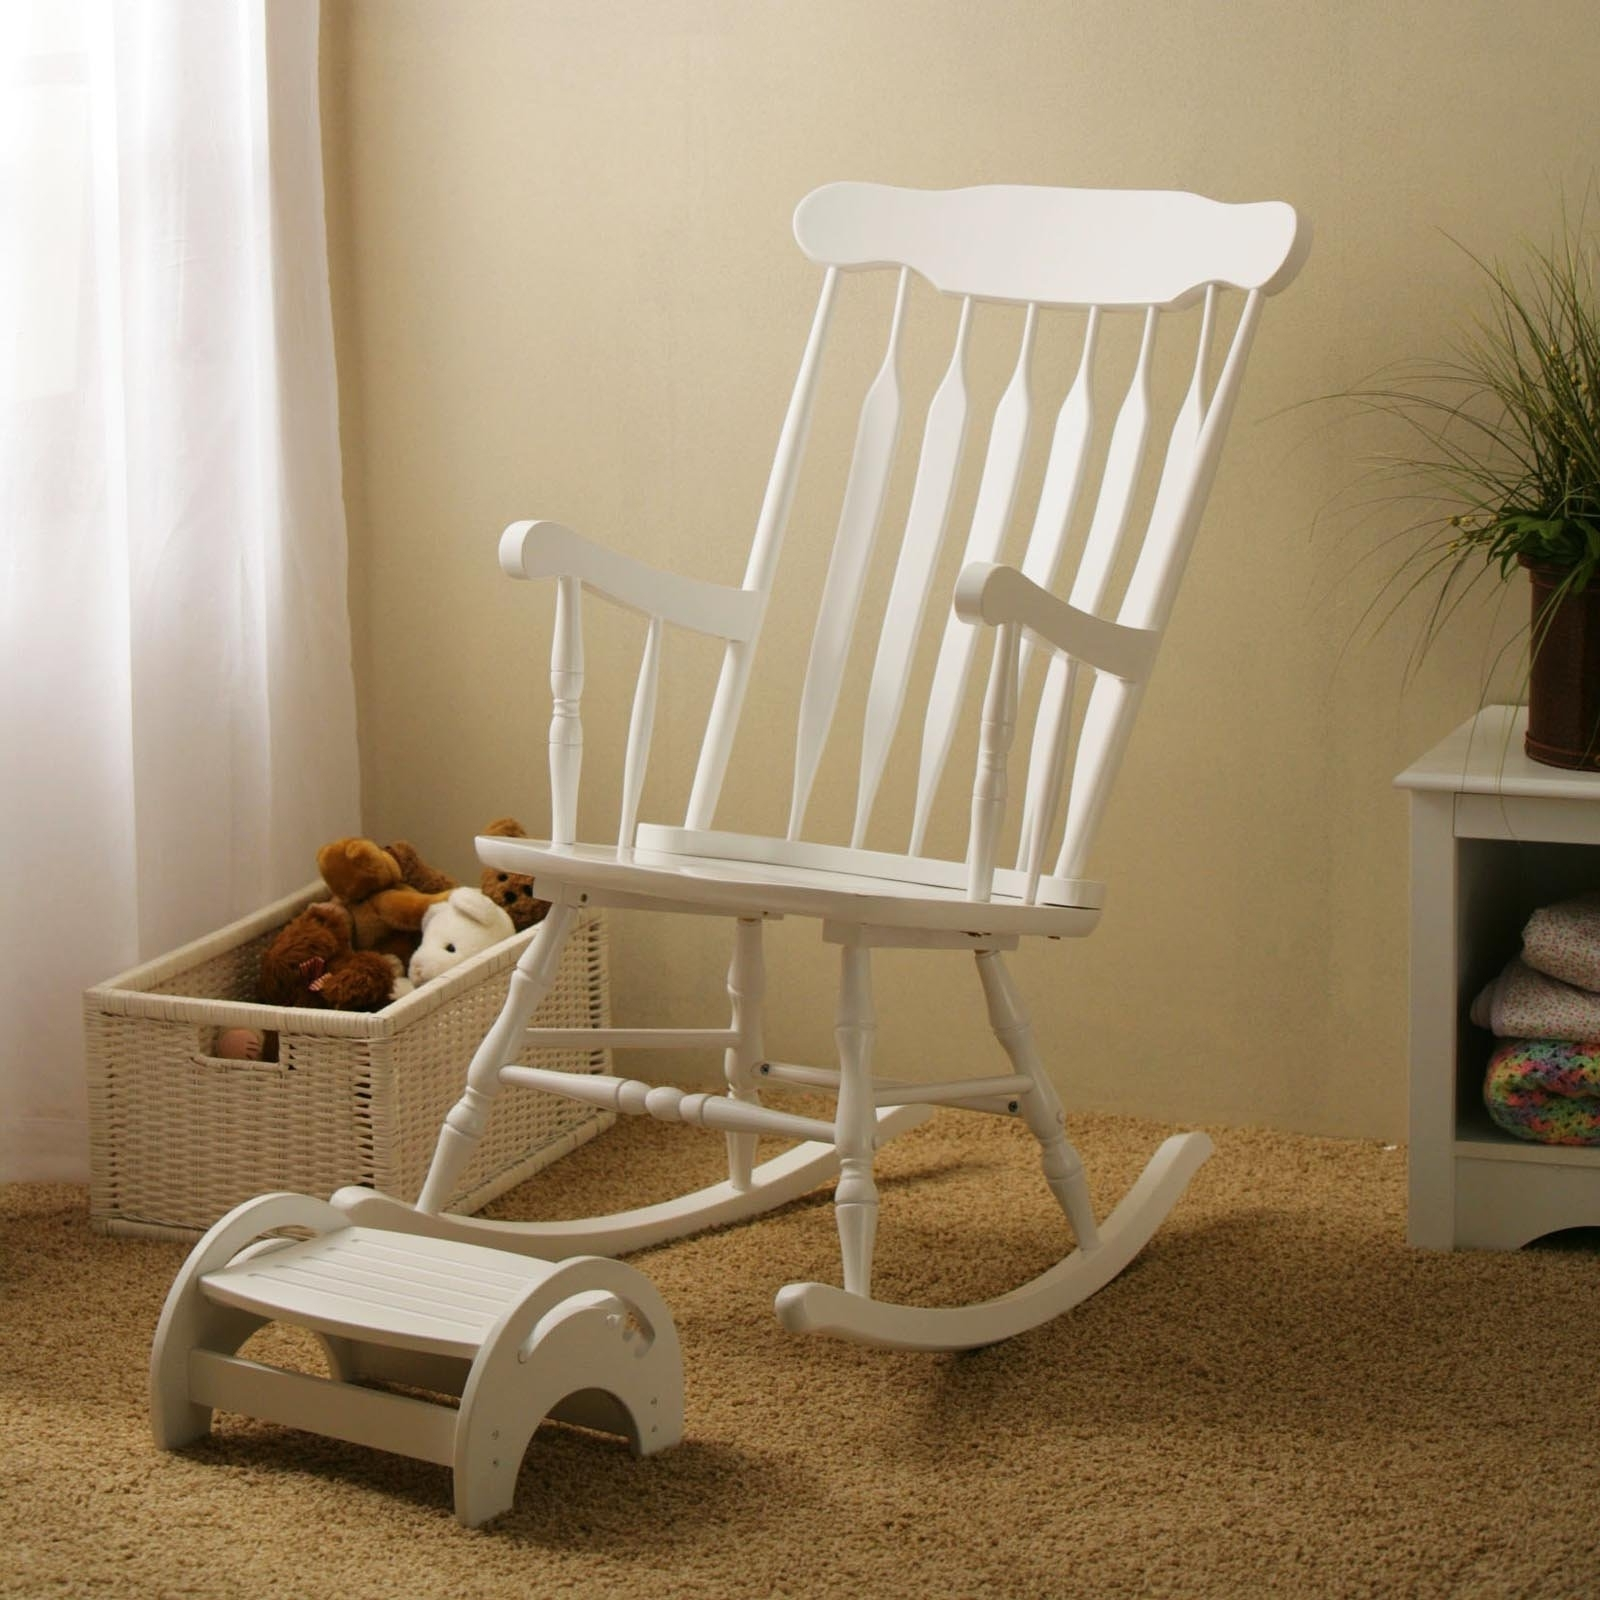 Widely Used Nursery Rocking Chair Melbourne – Nursery Rocking Chair For Mom And Within Rocking Chairs With Footstool (View 18 of 20)